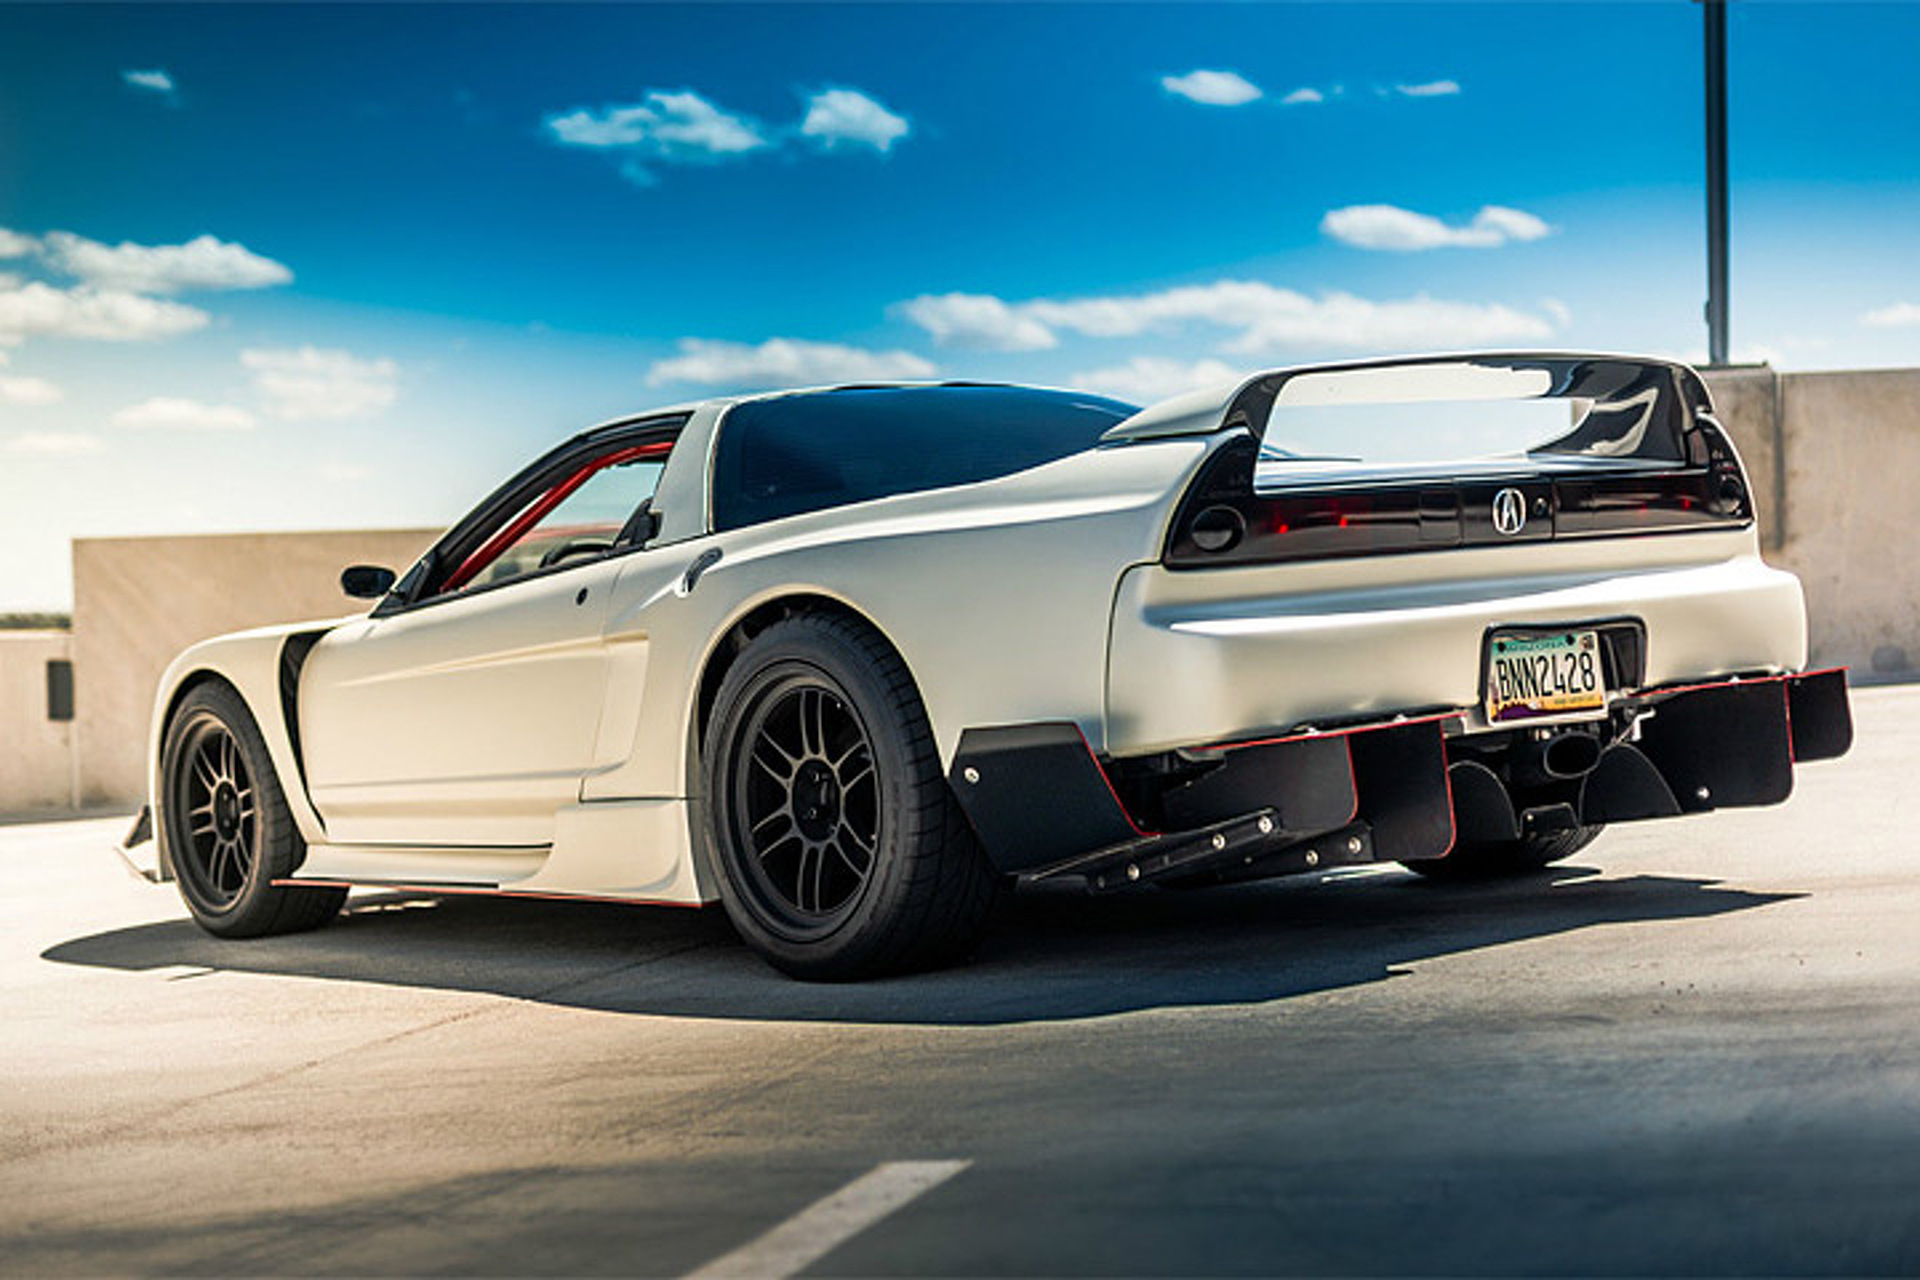 This Acura Nsx Tacks On A Turbo And Gets A Mean Makeover